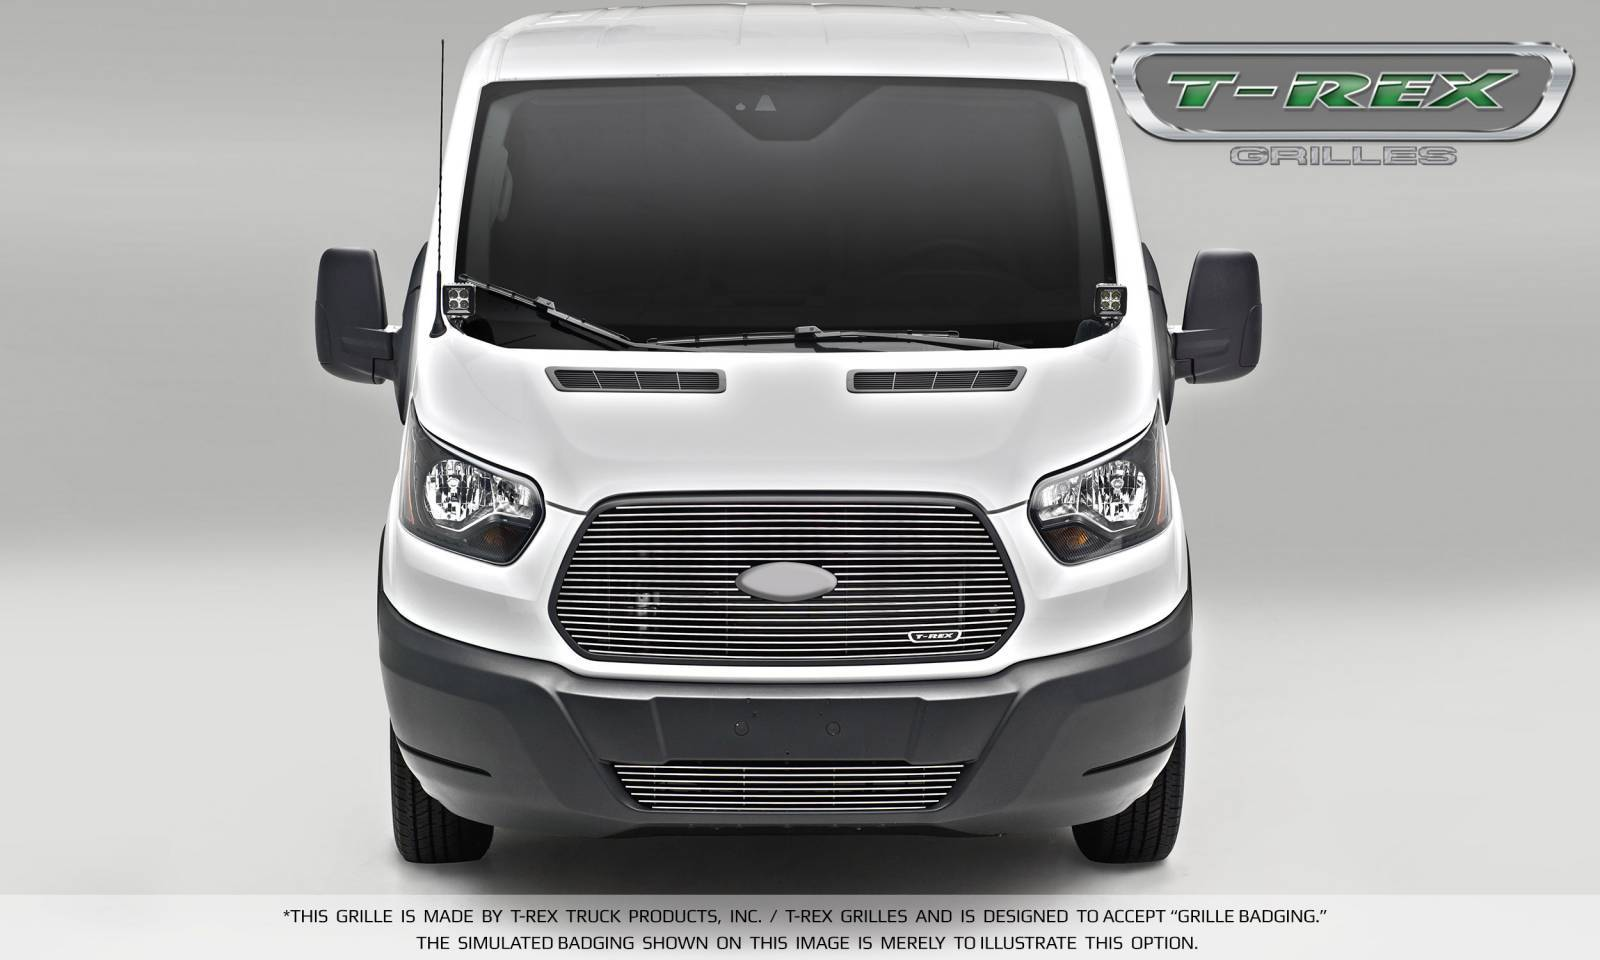 Ford Transit Van - Laser Billet - Main Grille - Insert w/ Logo - Polished Finish - Pt # 6205750